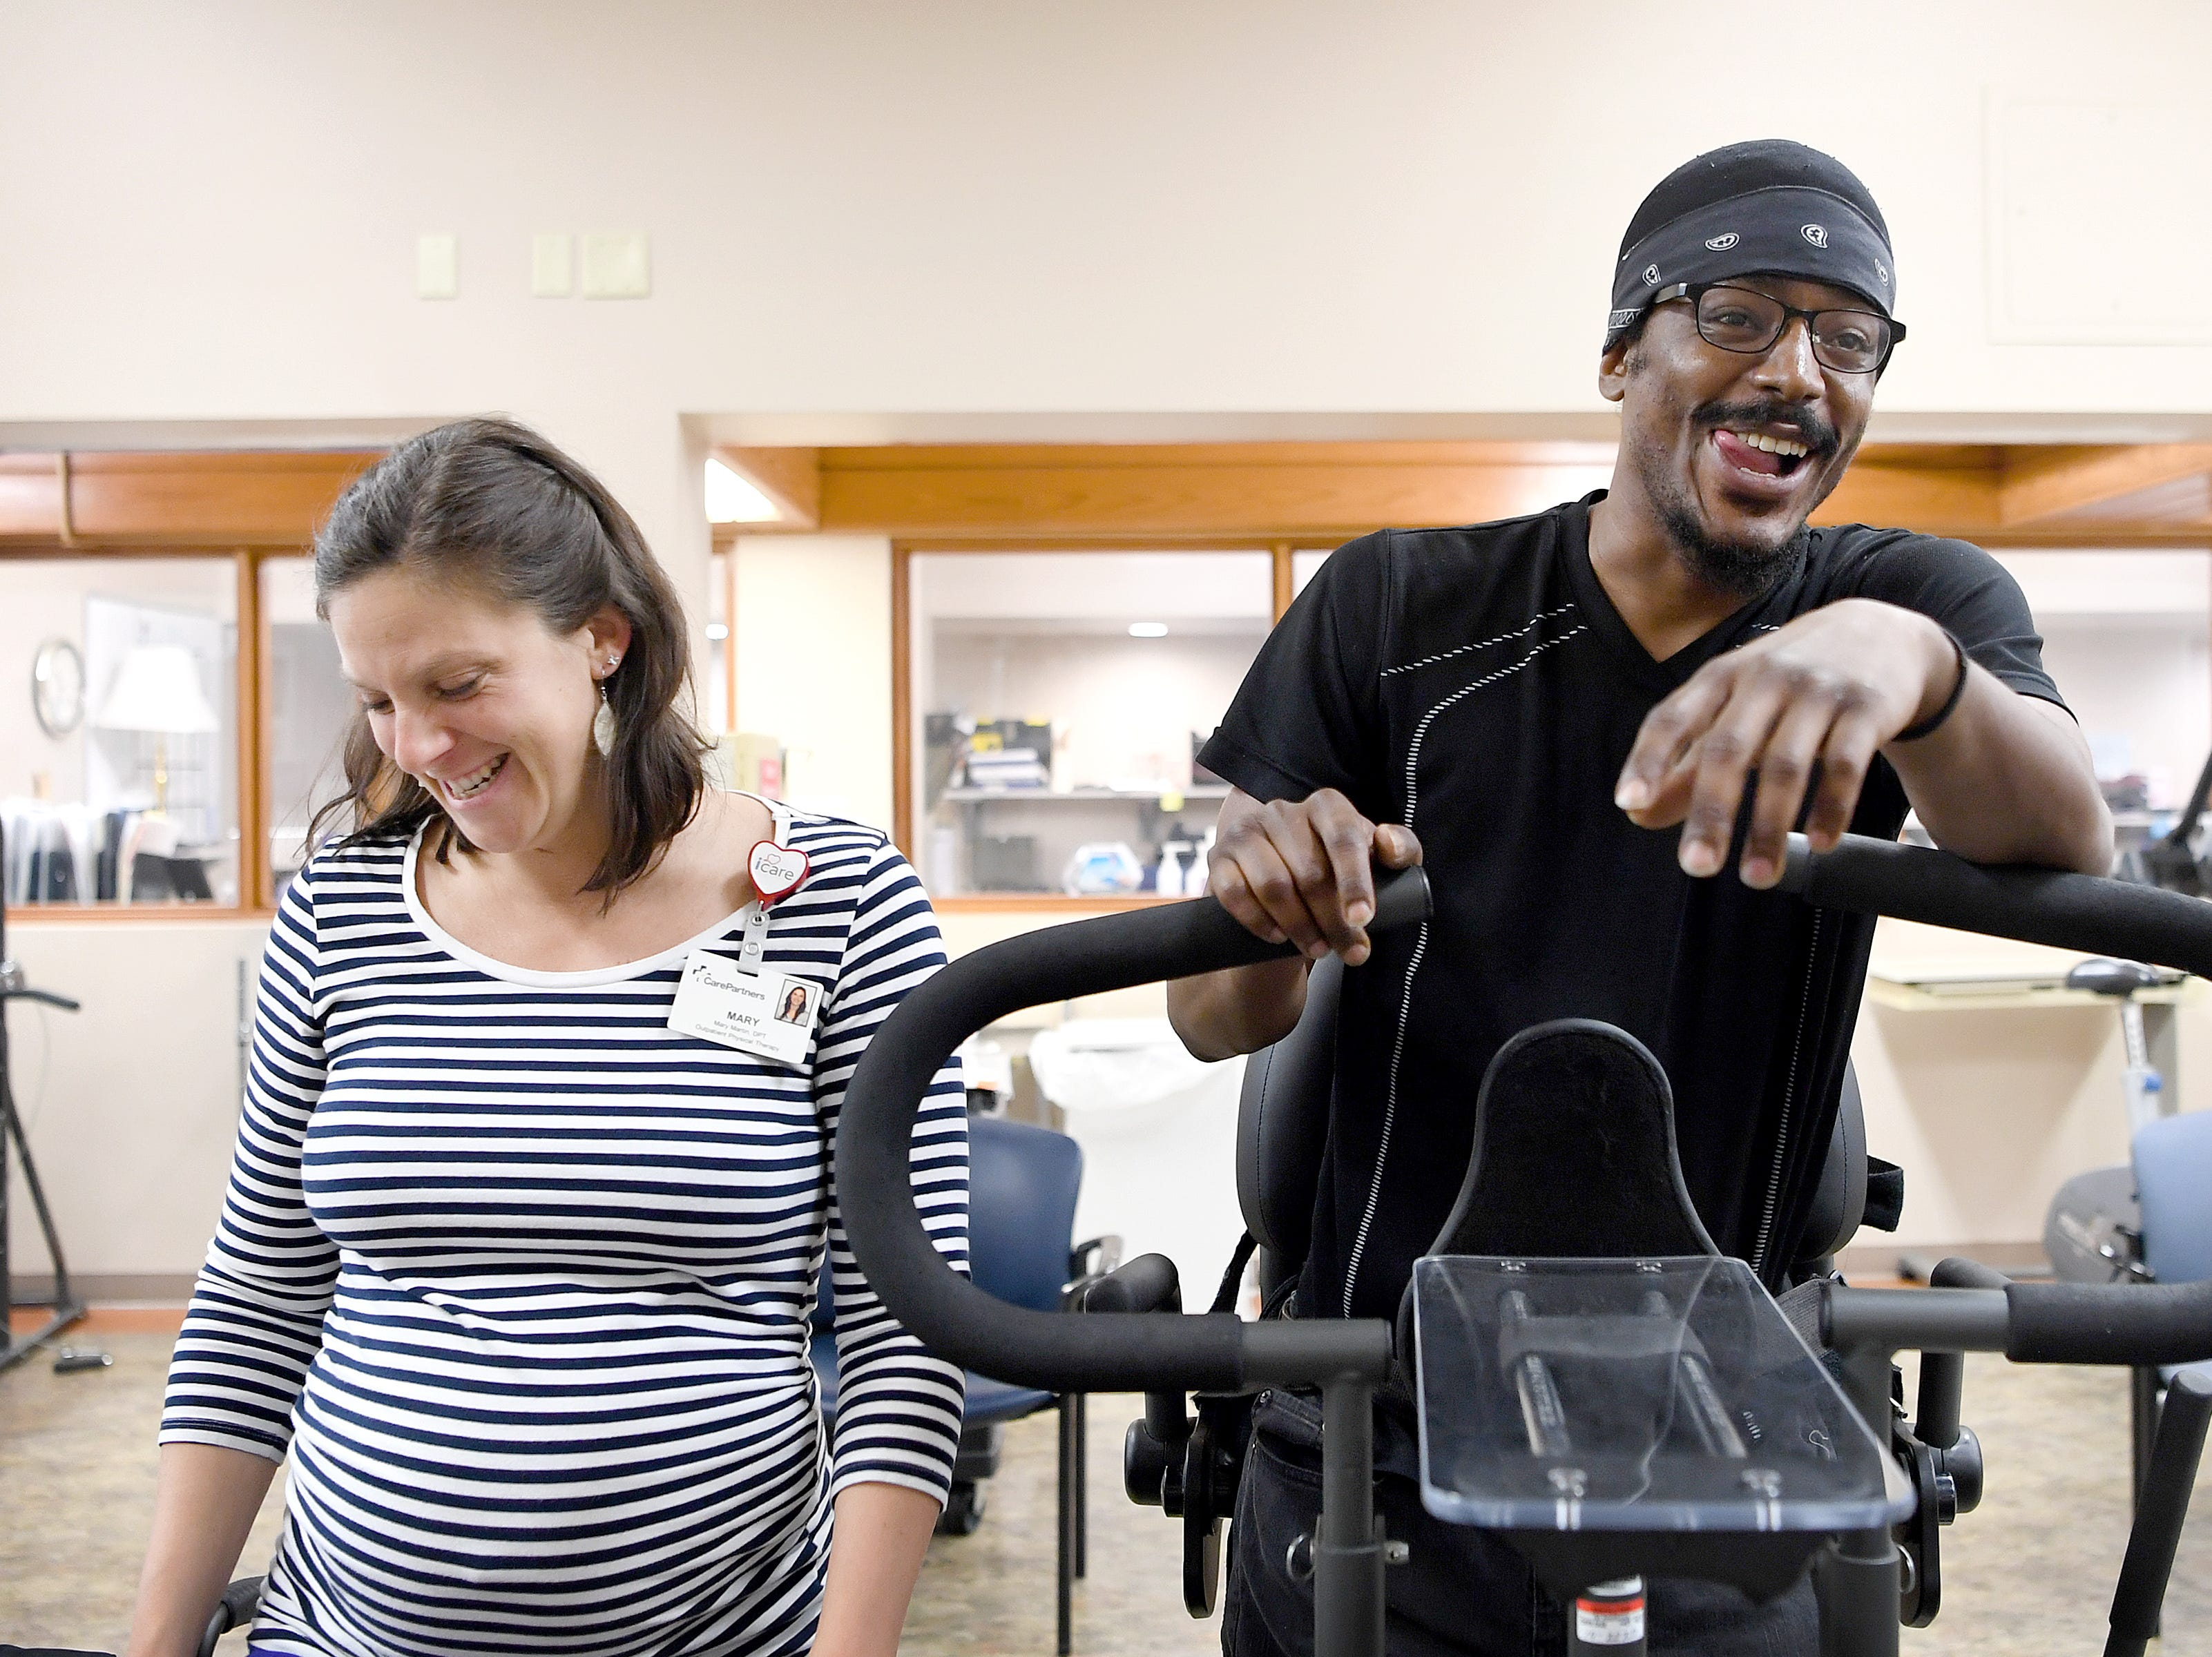 Physical therapist Mary Martin laughs with Octavius Boozier as he uses a machine to help him strand during an appointment at CarePartners on May 8, 2019. Boozier has limited use of his feet after being shot in the back in November 2017 but hopes to one day be able to walk again.